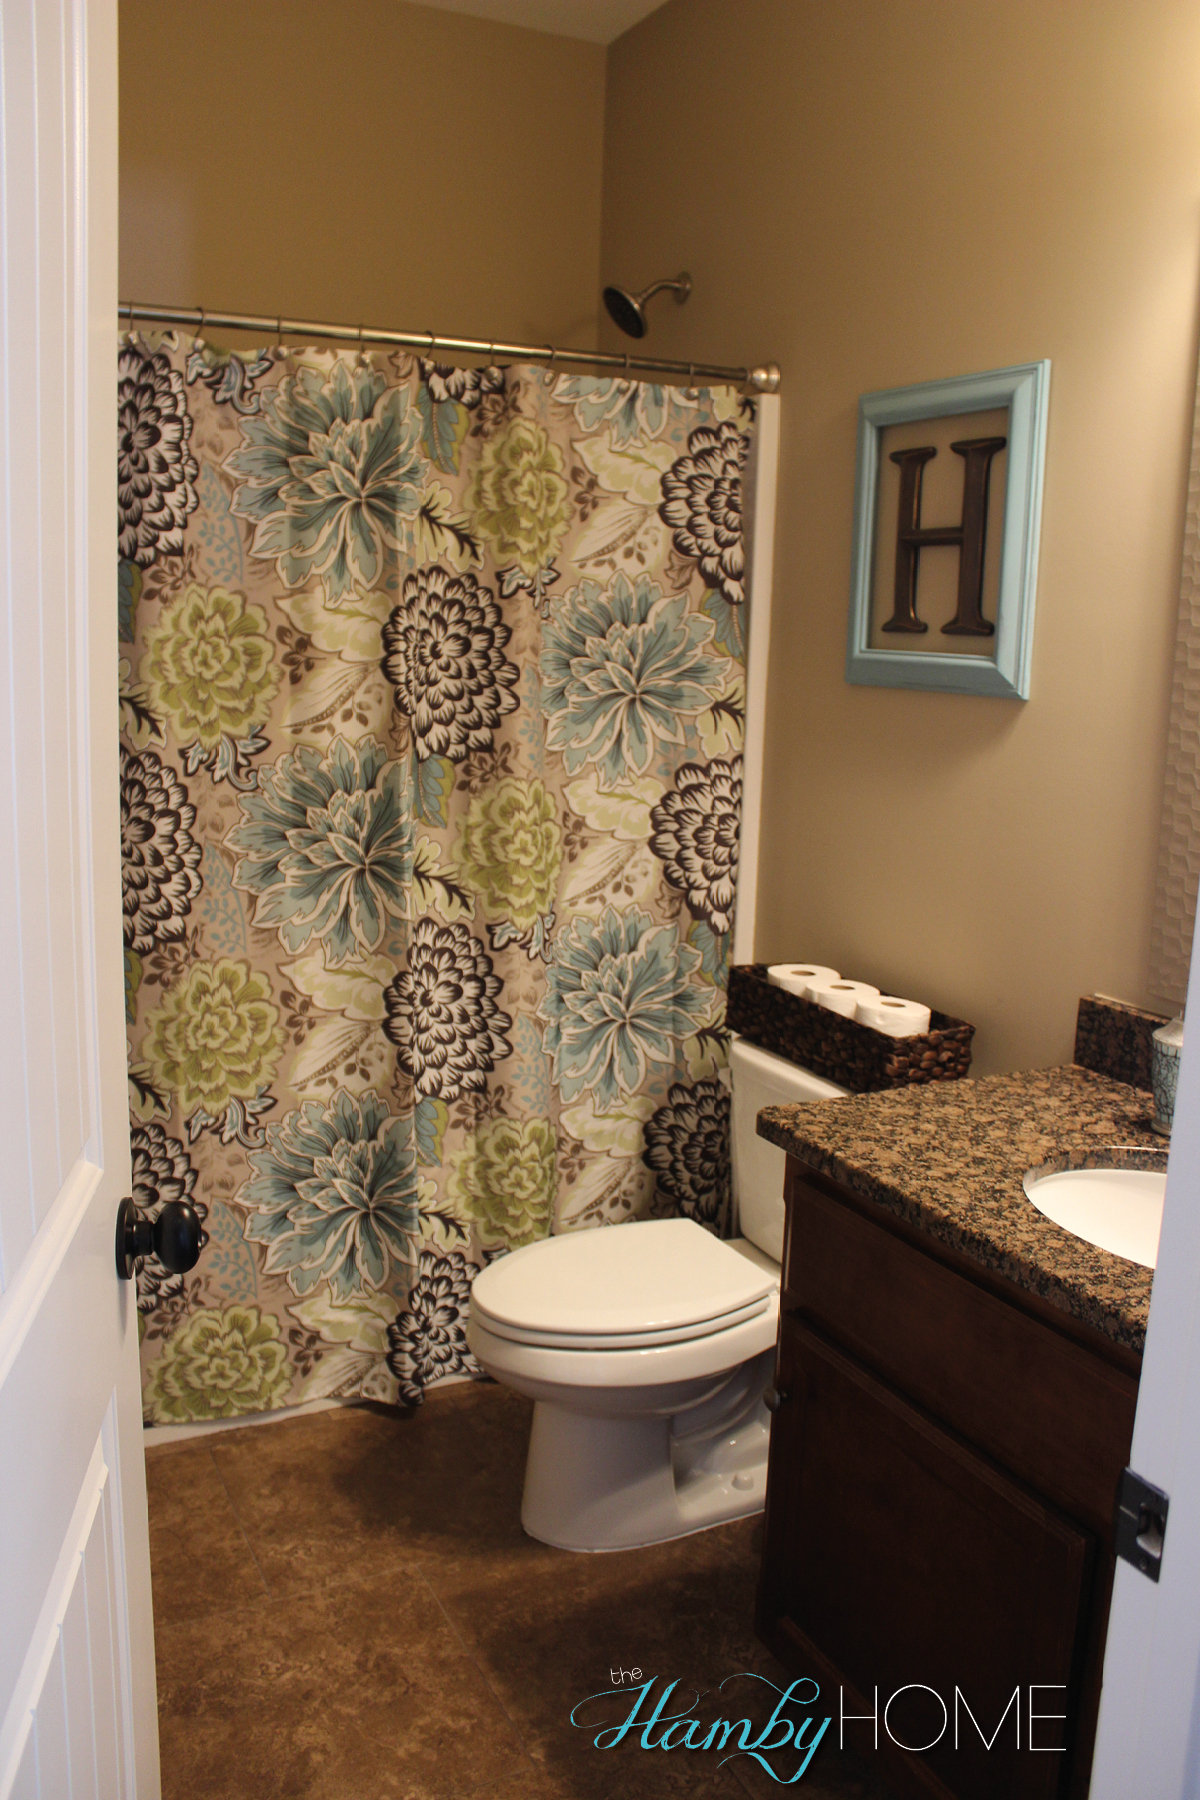 Tgif house tour guest bathroom the hamby home for Home decor interiors bathroom